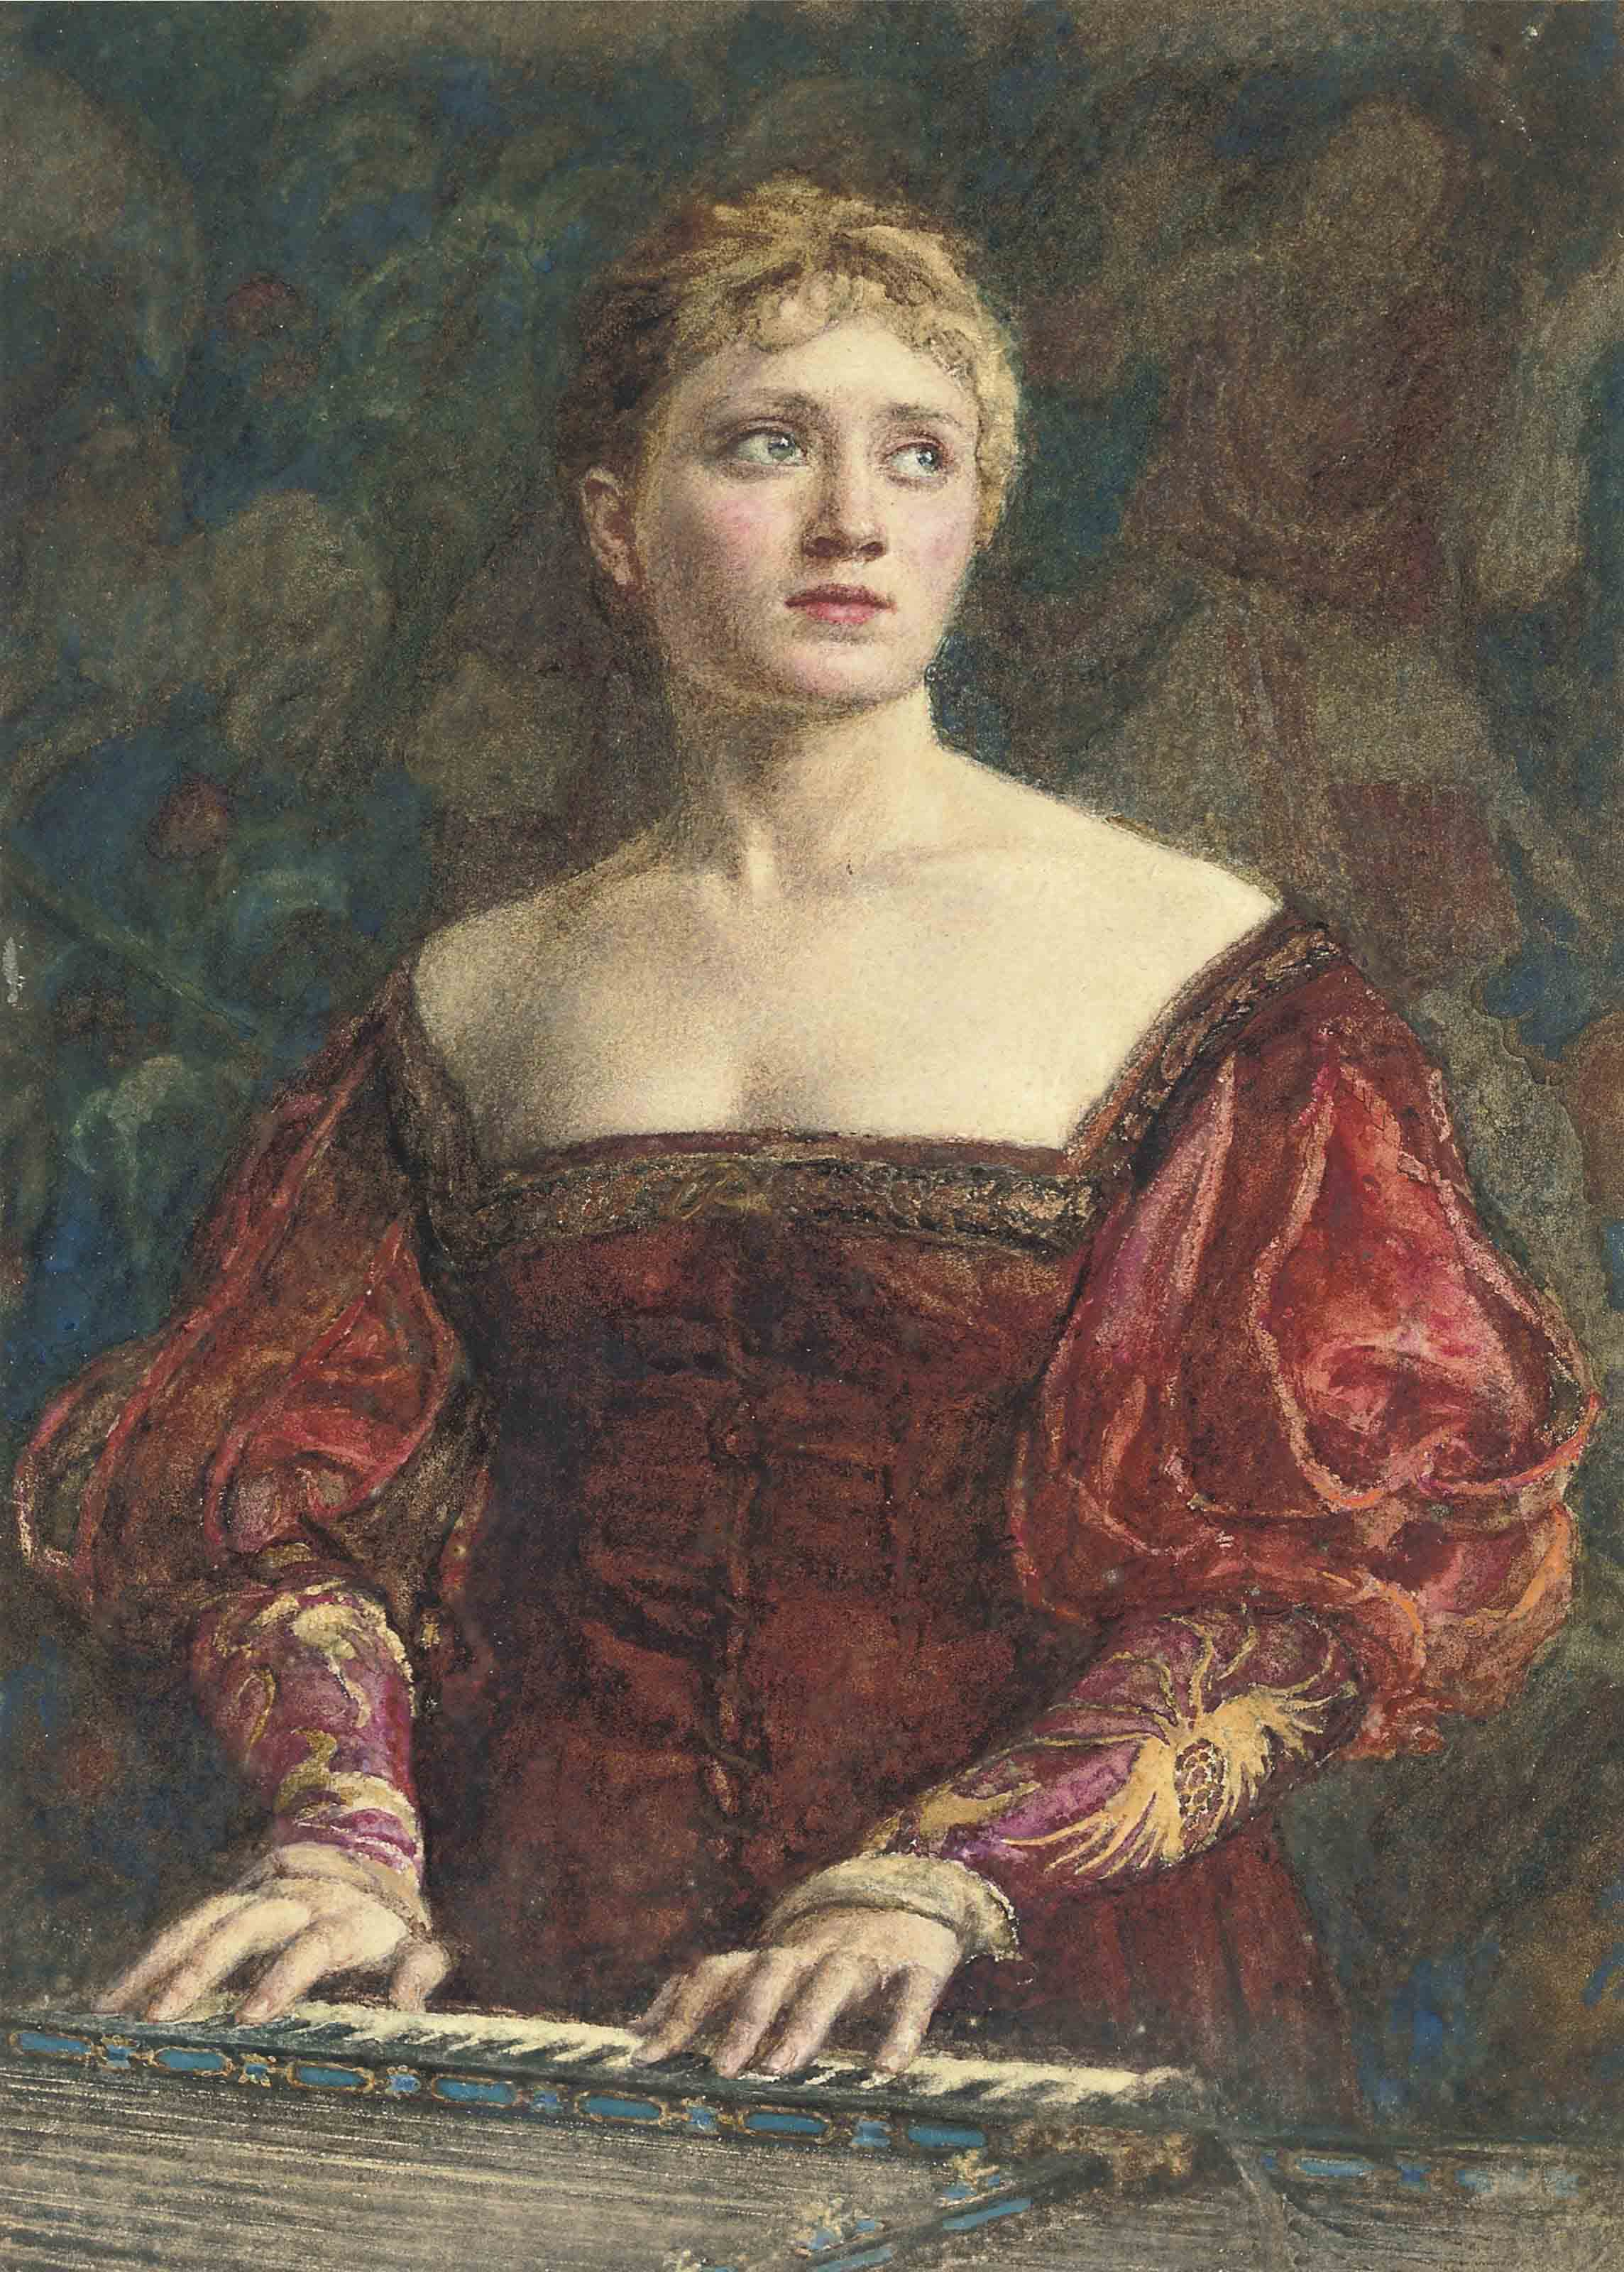 Young lady in Renaissance-style dress at a harpsichord